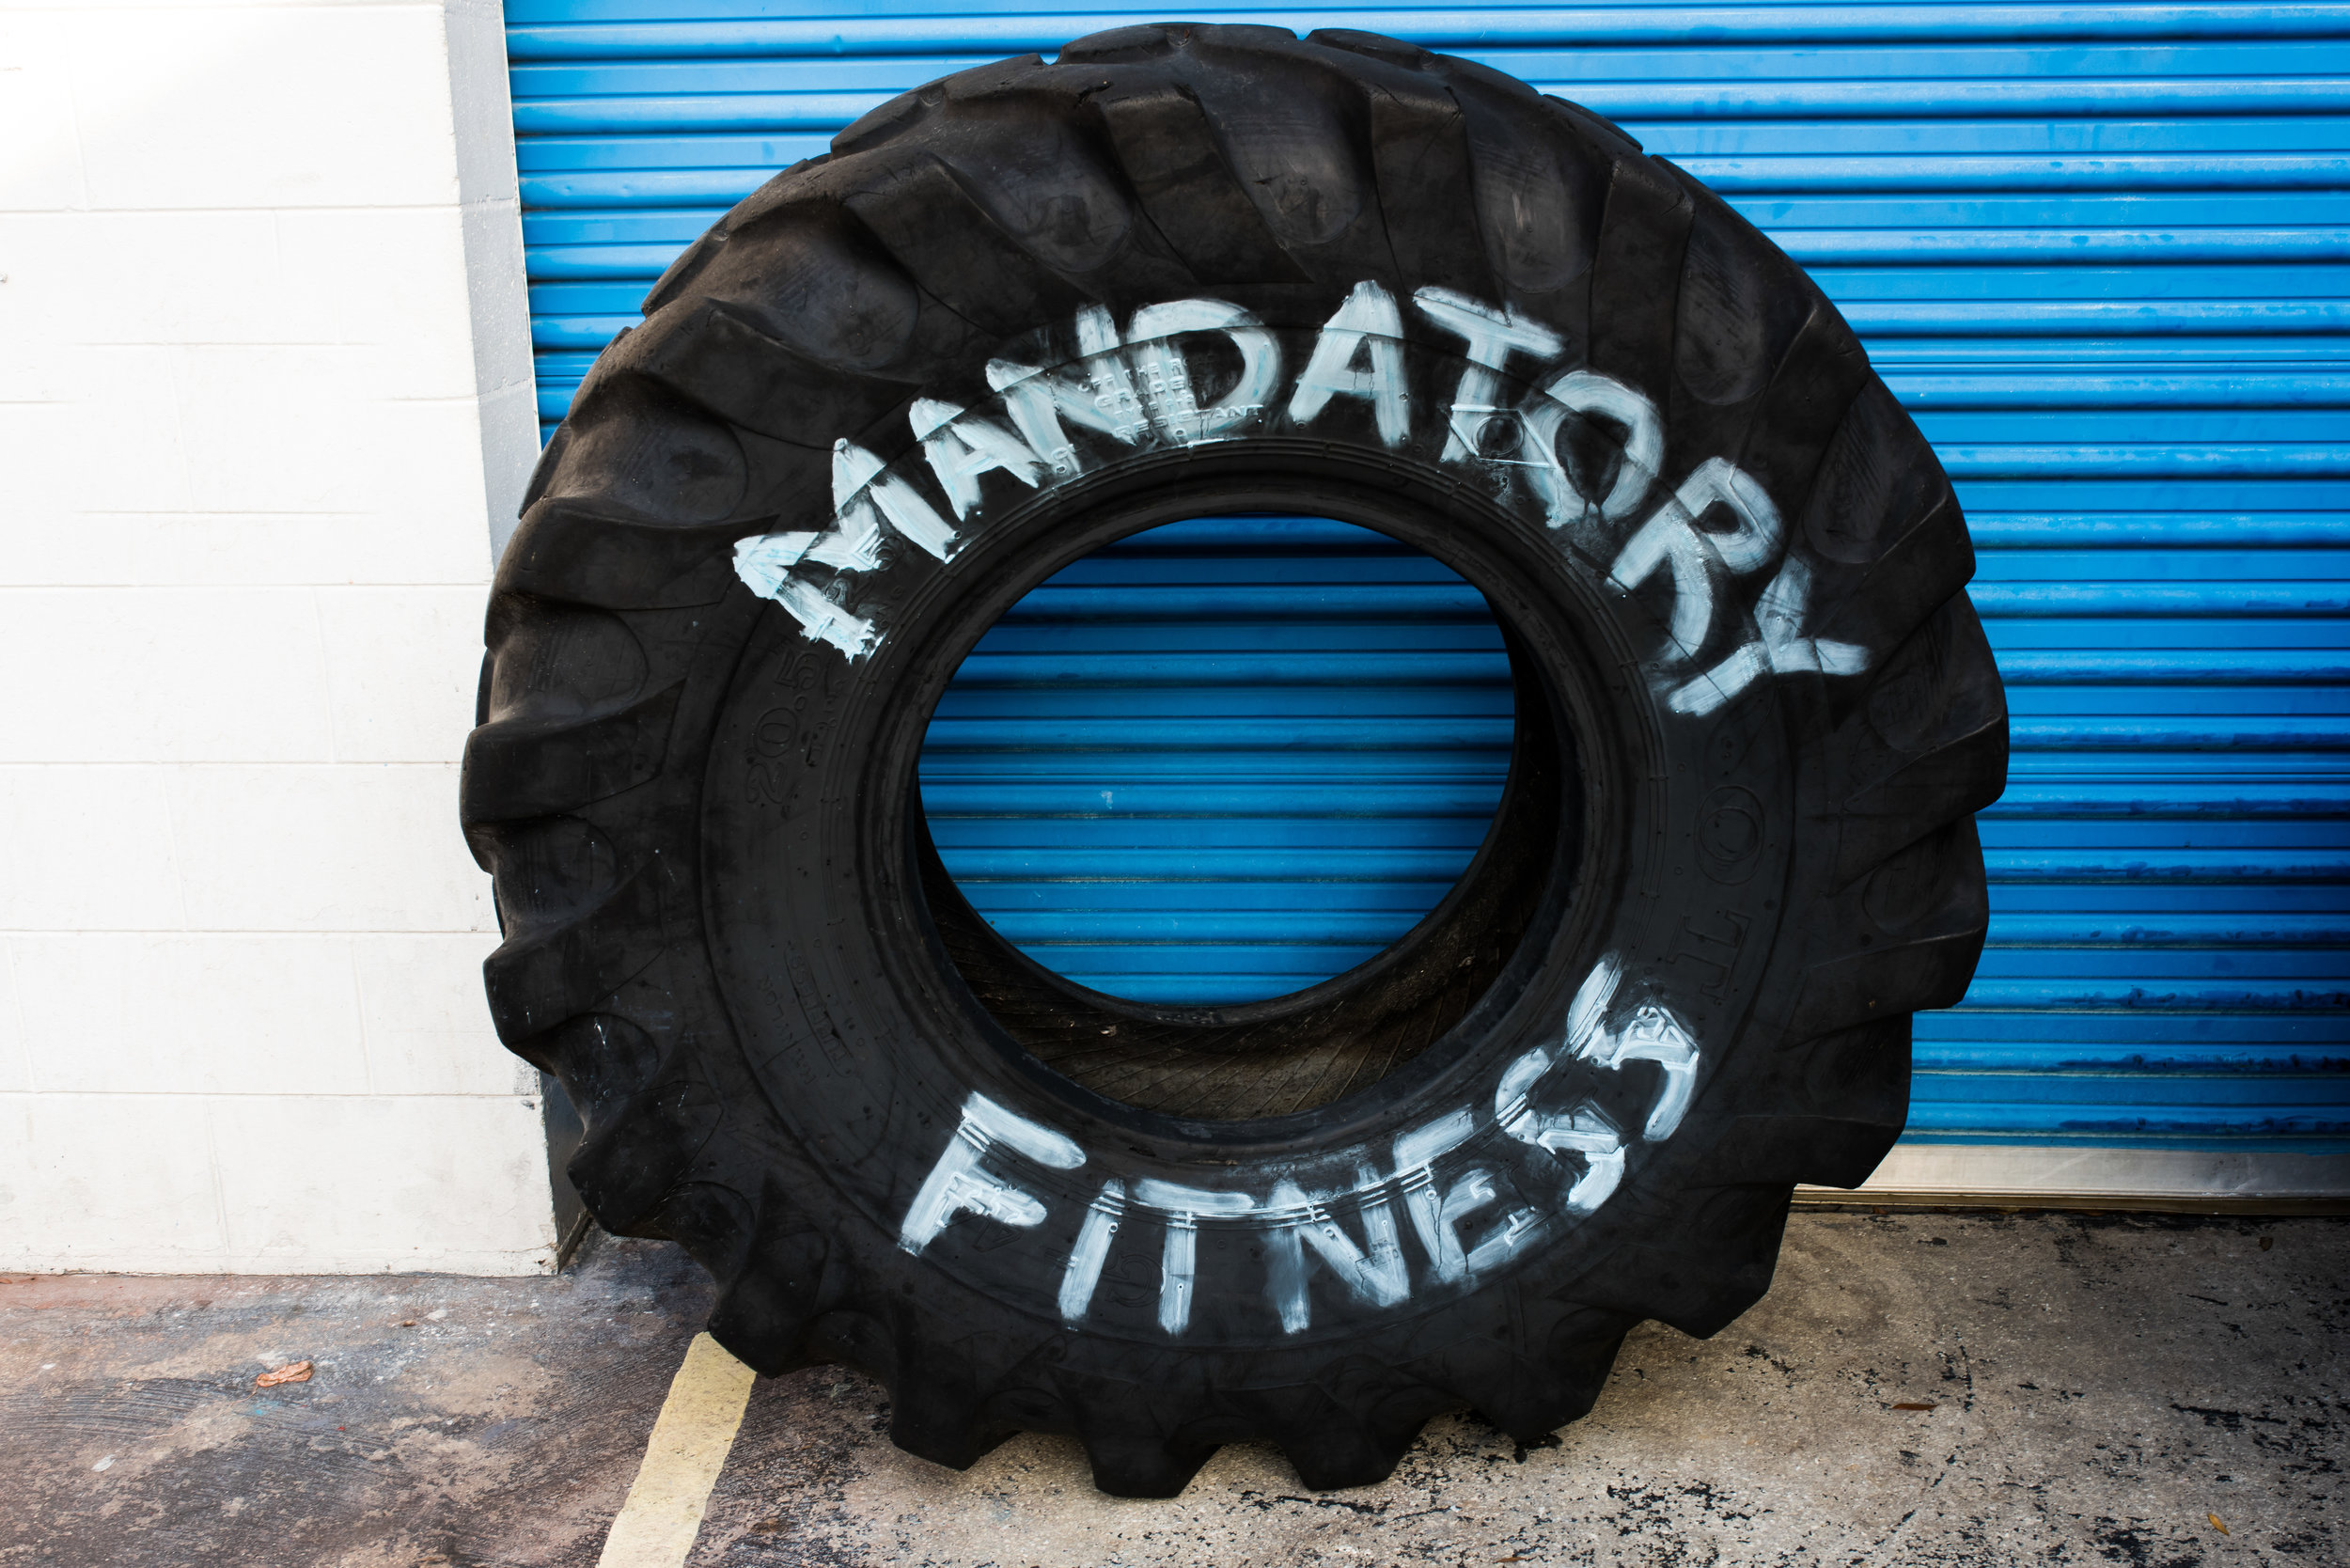 Check the Manda Fit Website! - Click Here